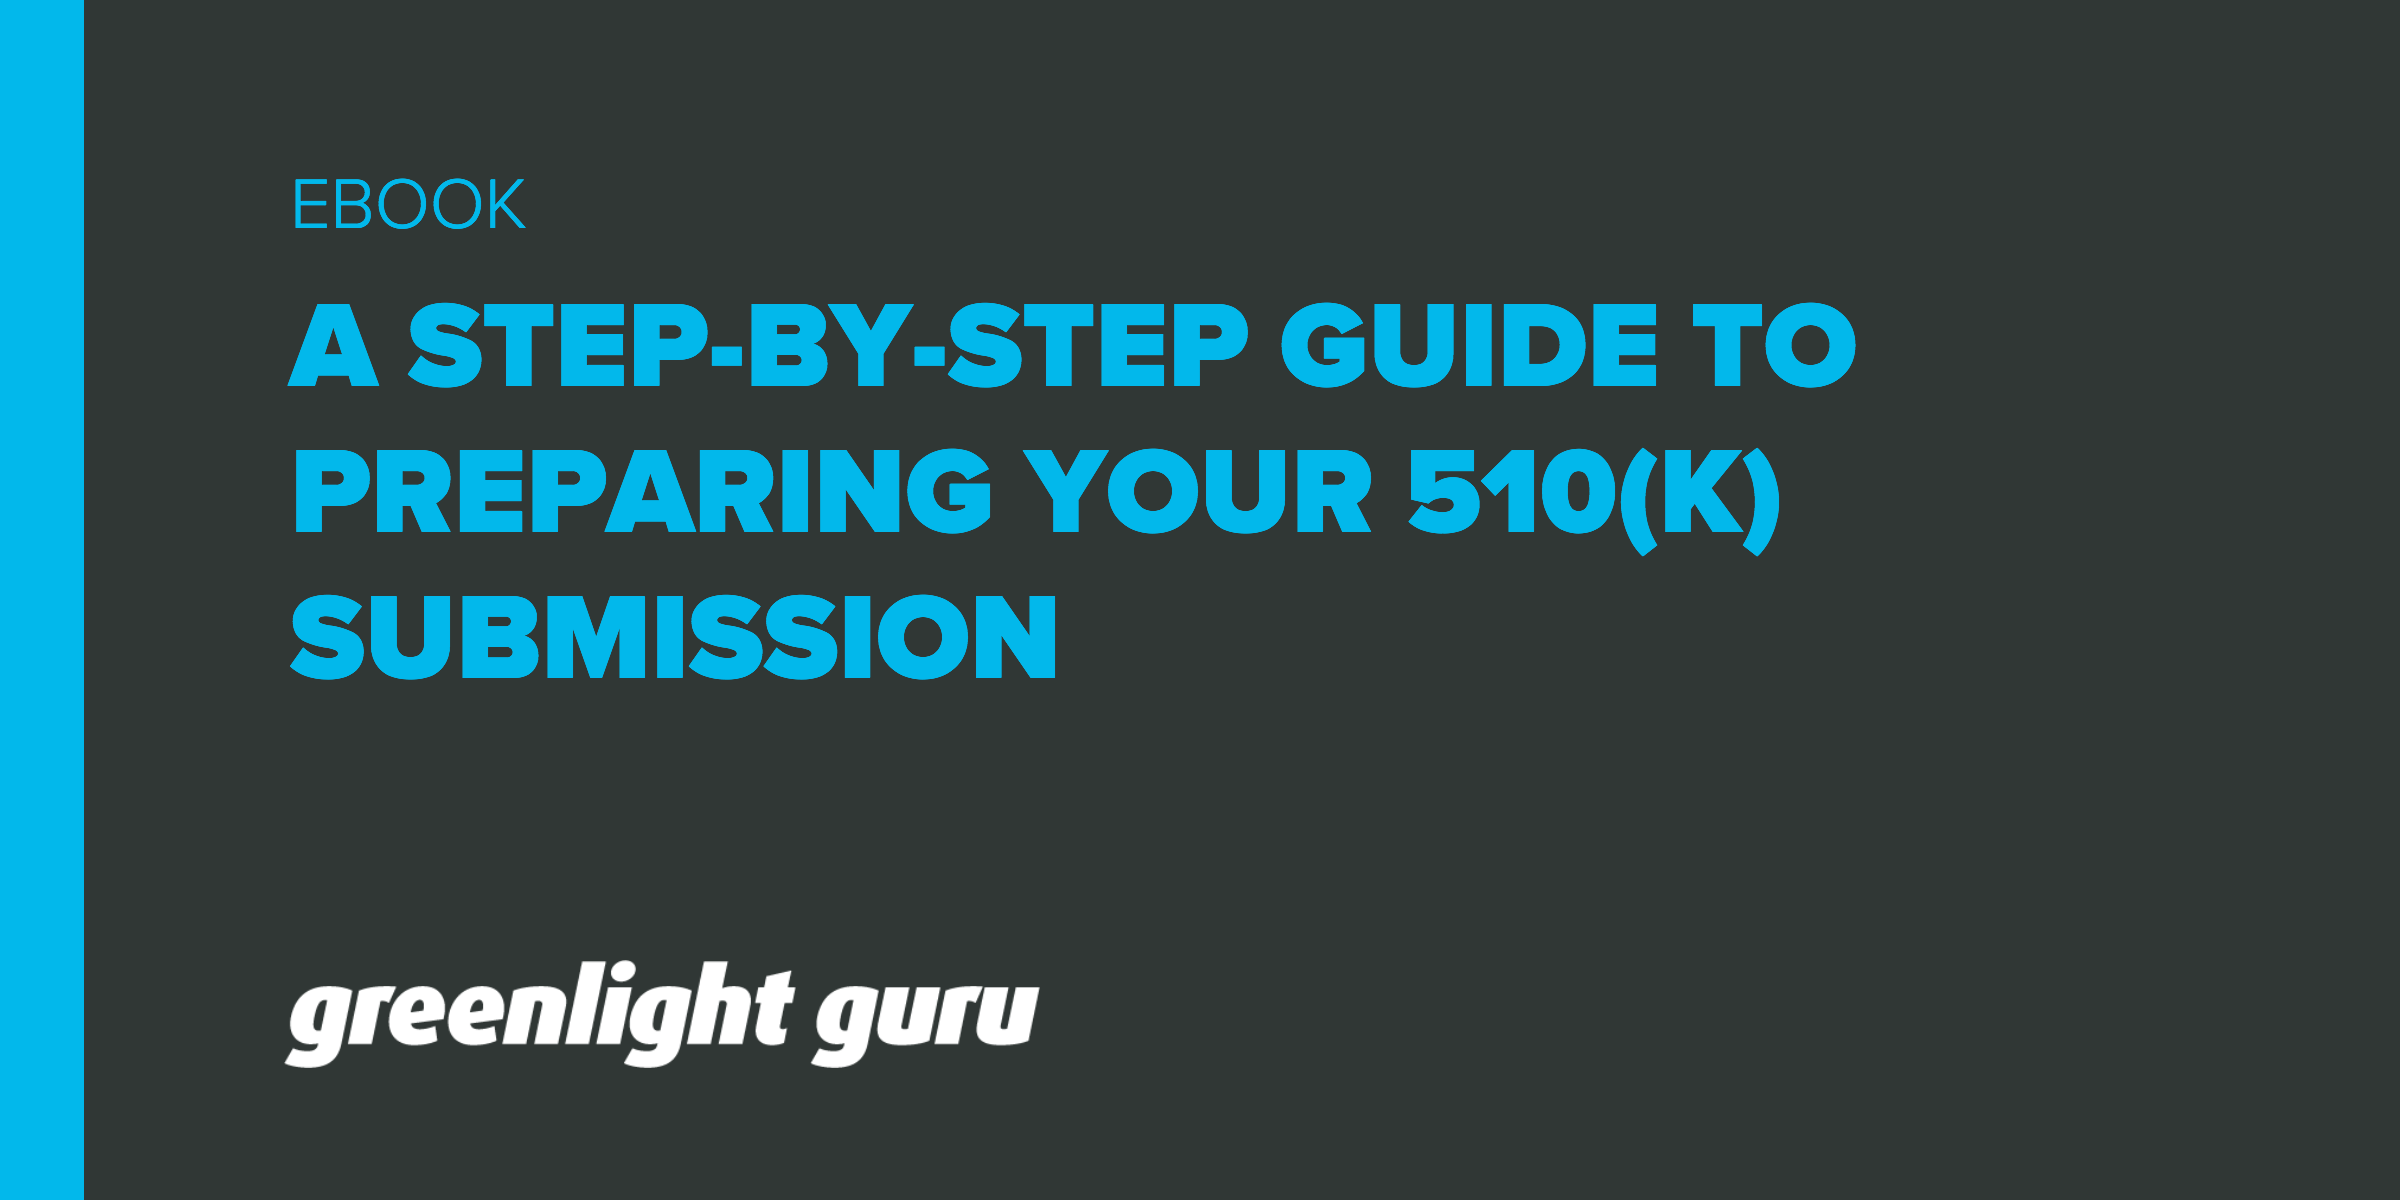 FDA 510(k) Submission: A Step-By-Step Guide On How To Prepare Yours